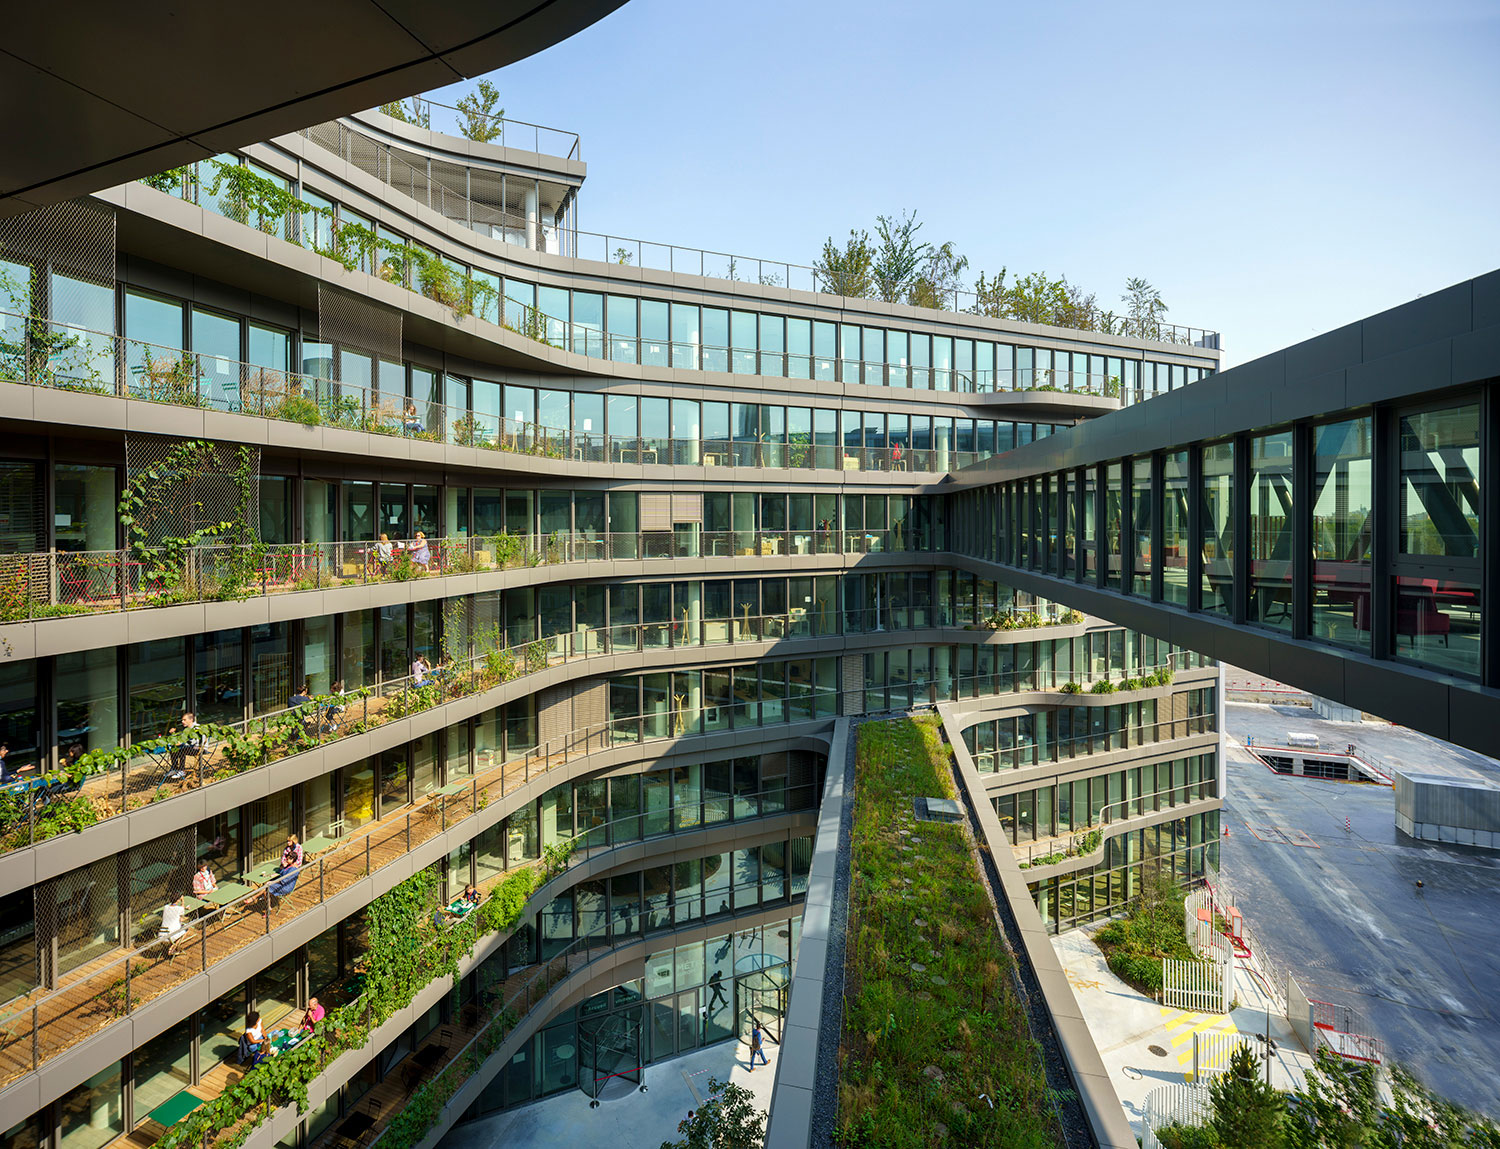 Rejecting the concept of anonymous, dead-end corridors typical of offices, employees at the Biotope move through a circular path that leads through open-air balconies, roof gardens, and skybridges © Javier Callejas Sevilla